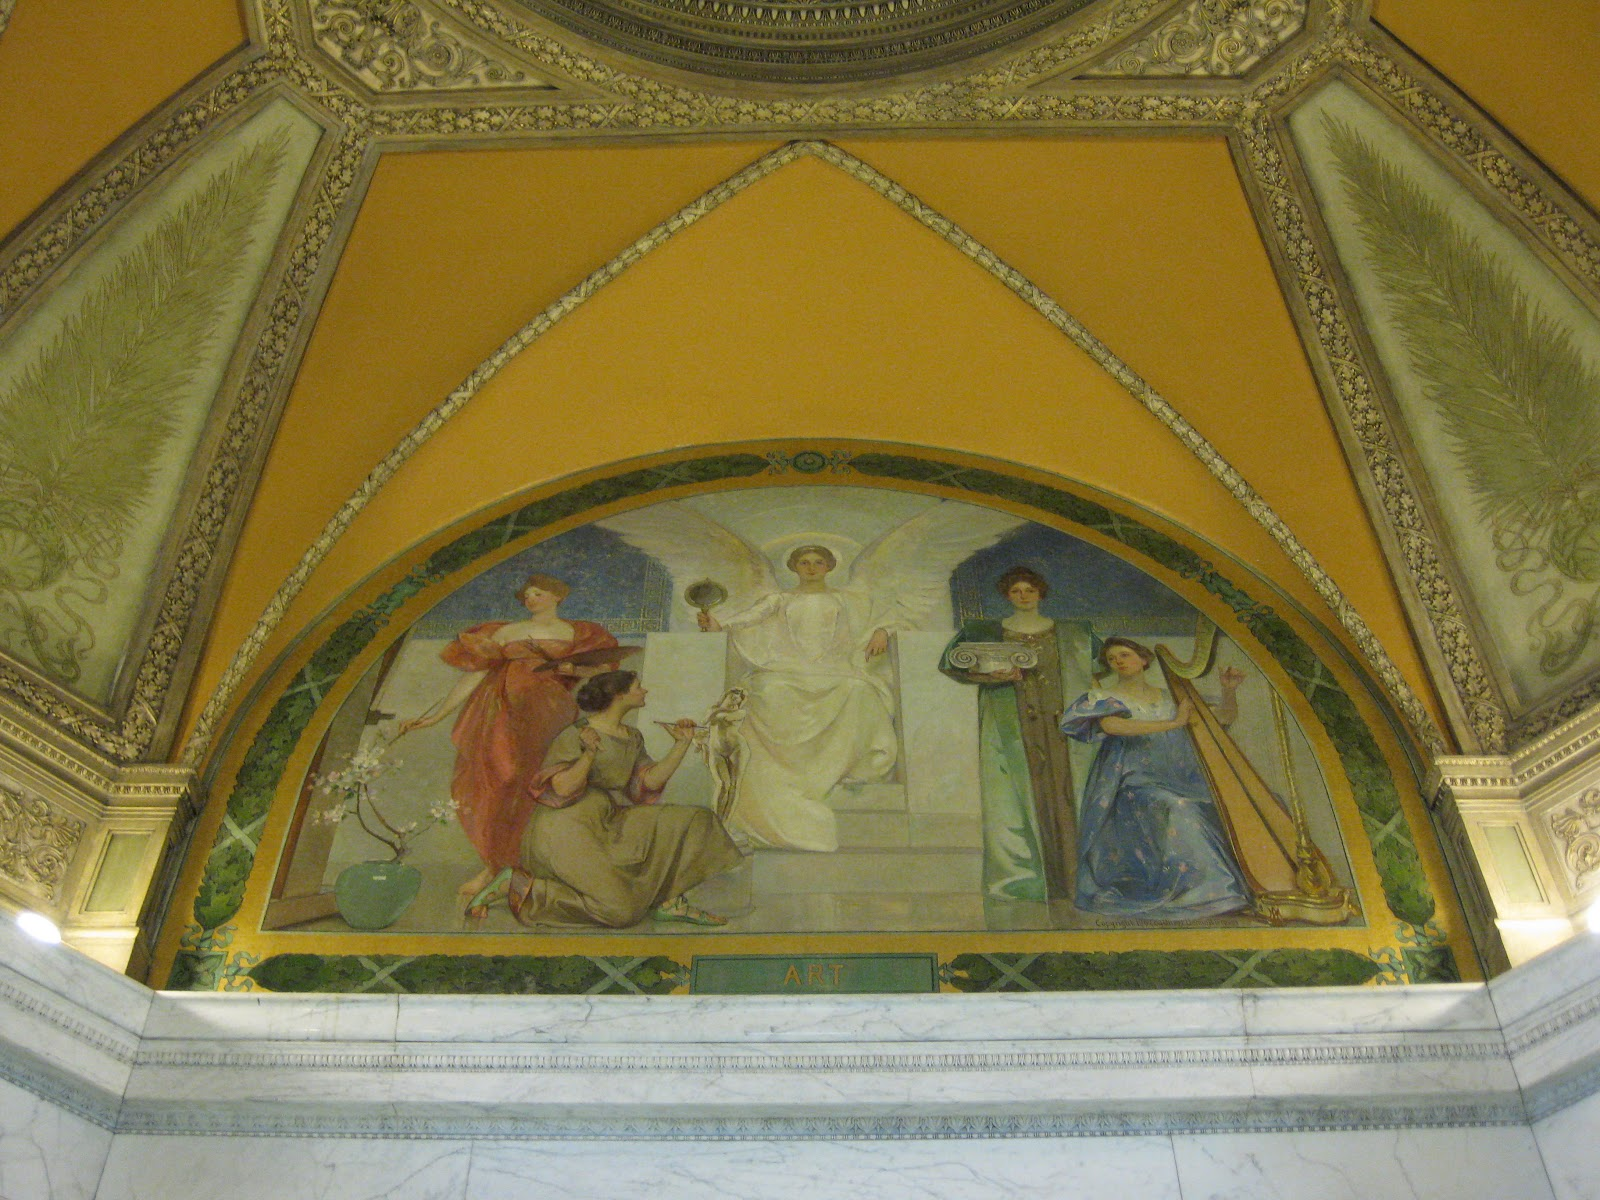 Wildmoobooks library timothy b blackstone memorial for Figure 8 mural